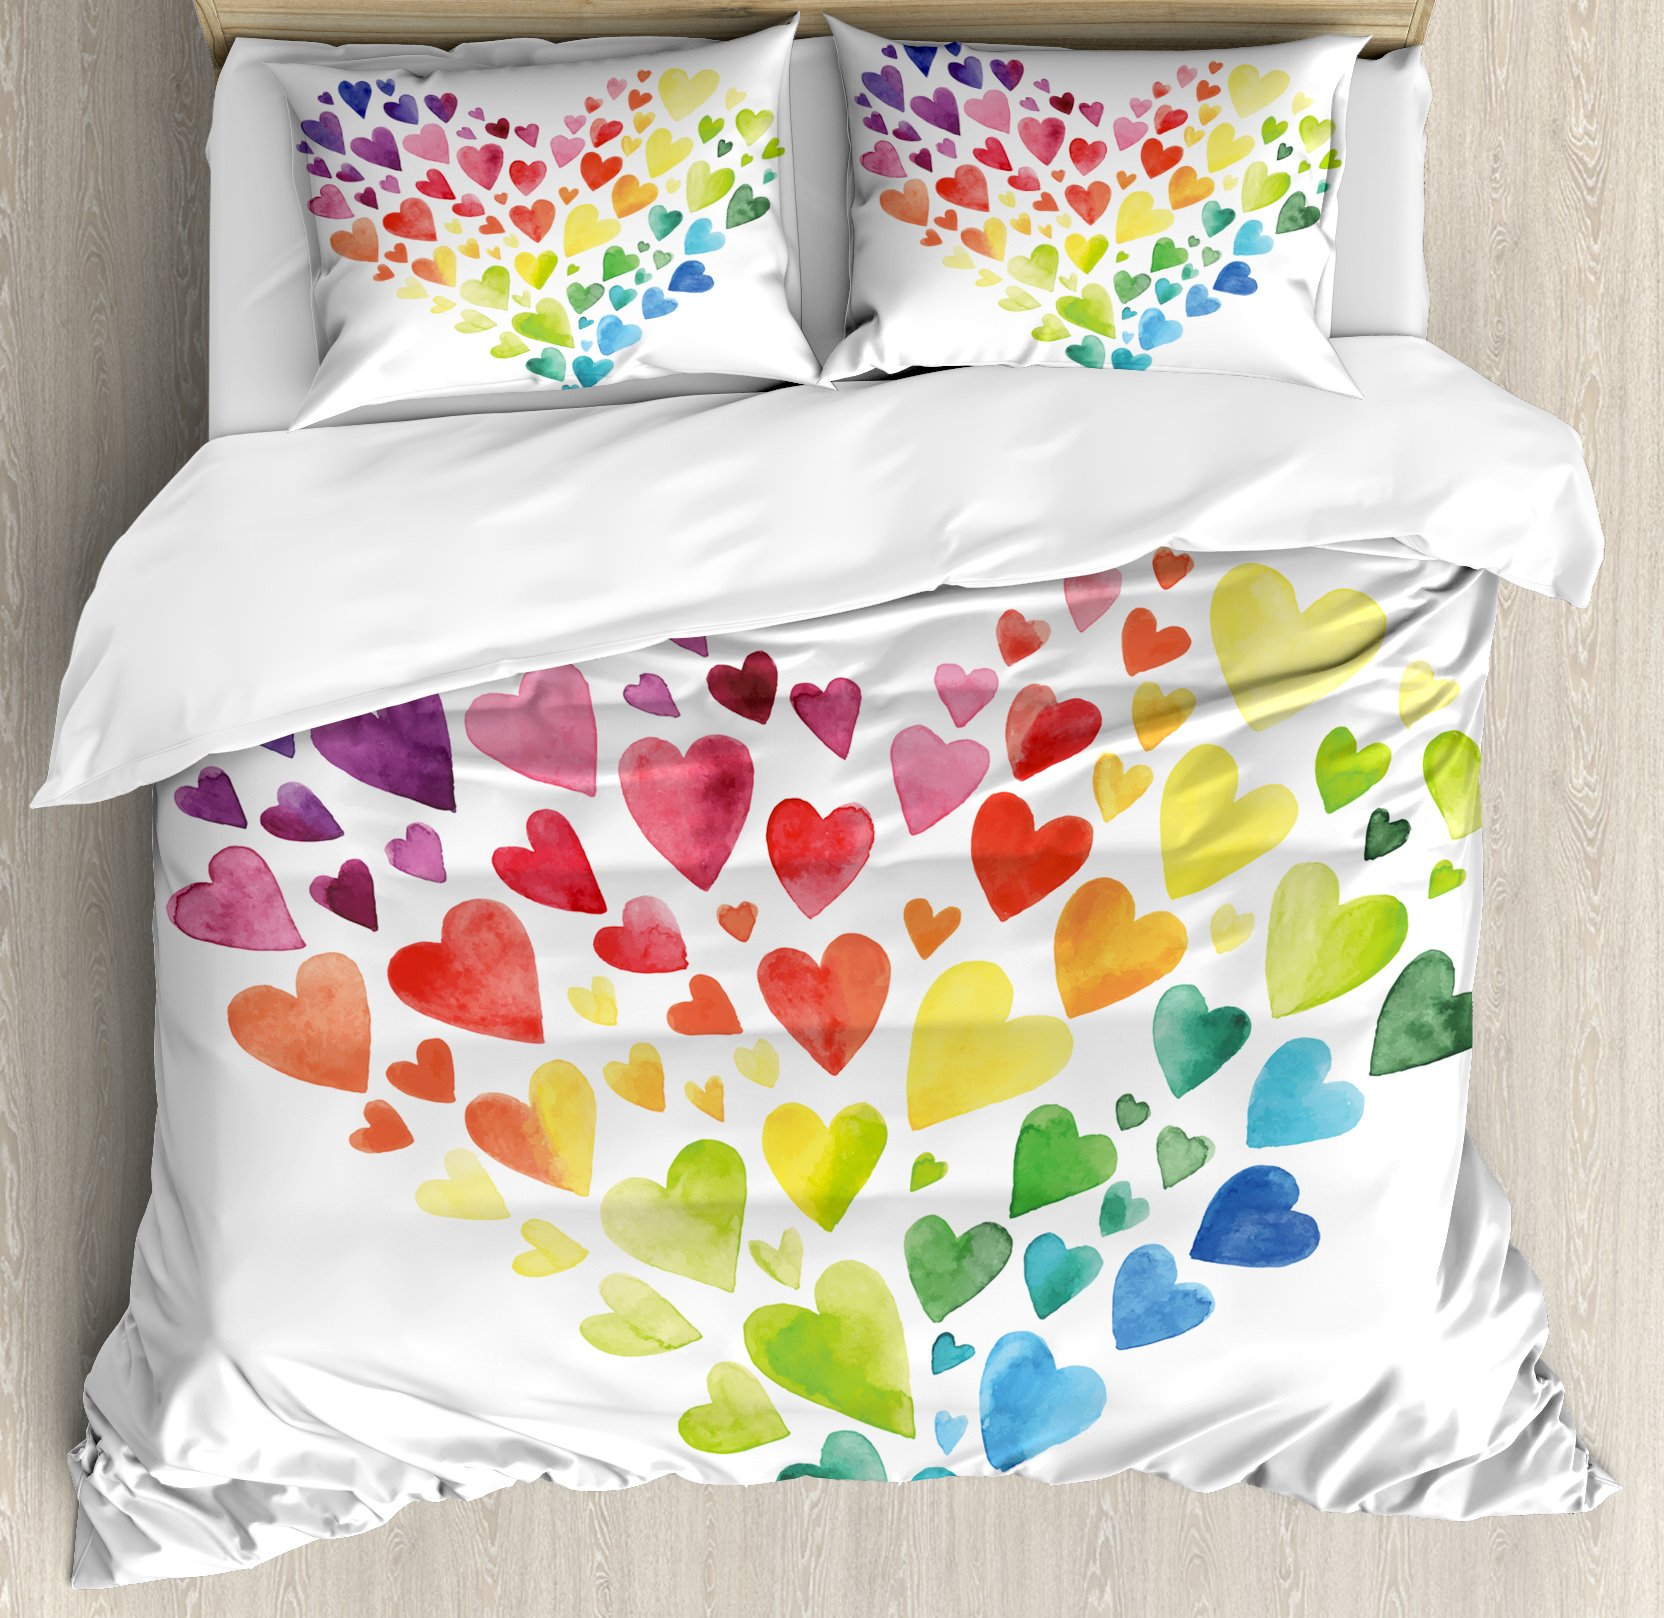 Ambesonne Rainbow Duvet Cover Set Queen Size, Multicolored Hearts forming a Giant Colorful Rainbow Inspired Heart Love Artwork, Decorative 3 Piece Bedding Set with 2 Pillow Shams, Multicolor by Ambesonne (Image #1)